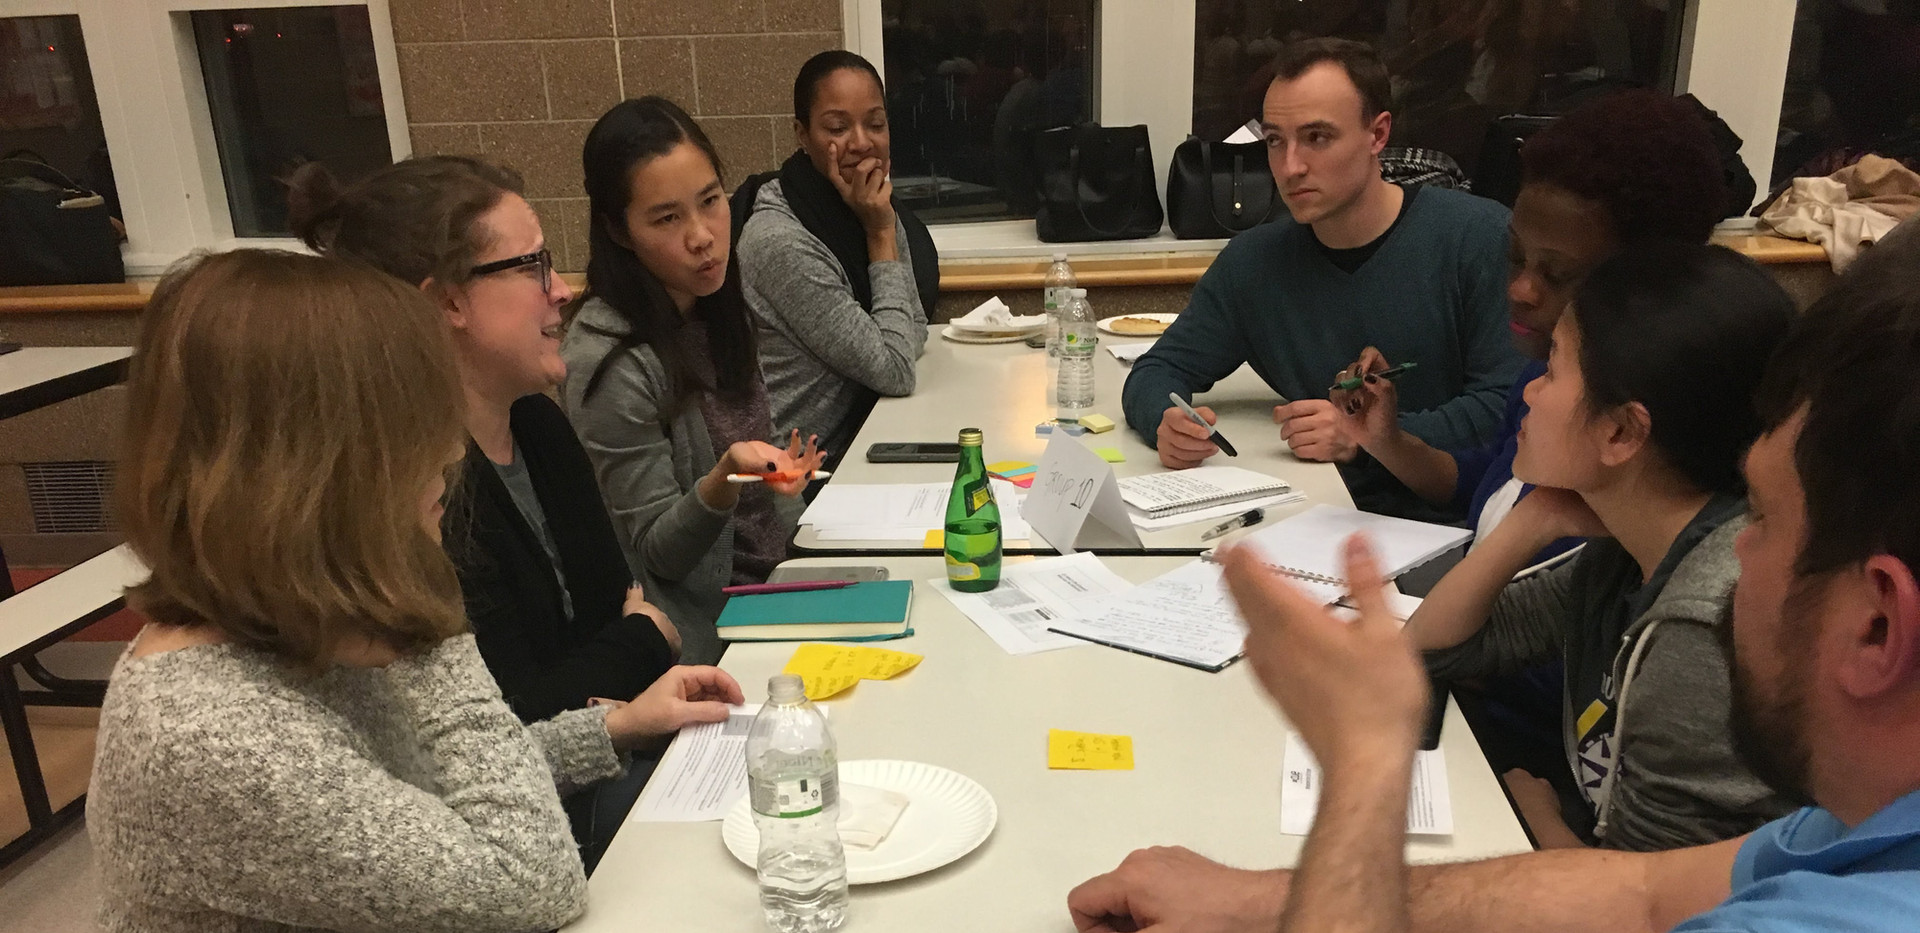 2018 CUE Fellows Vanessa Lee and Louis Makarewicz lead a discussion of burdens and benefits before the group begins to consider strategies to address potential harm.